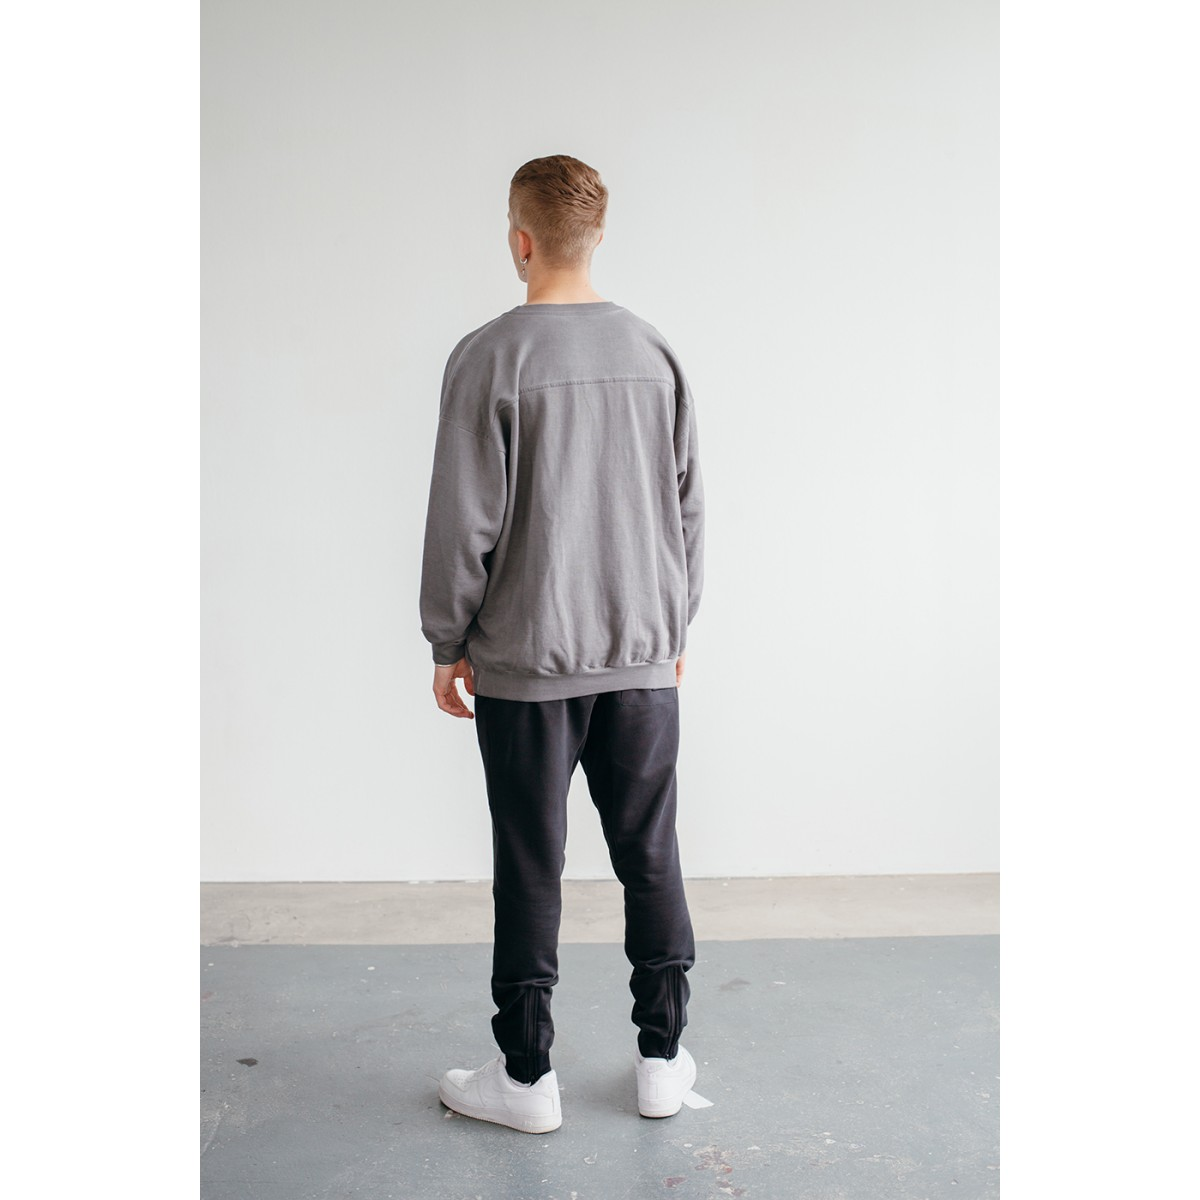 Goodbois Sailing Crewneck grey washed